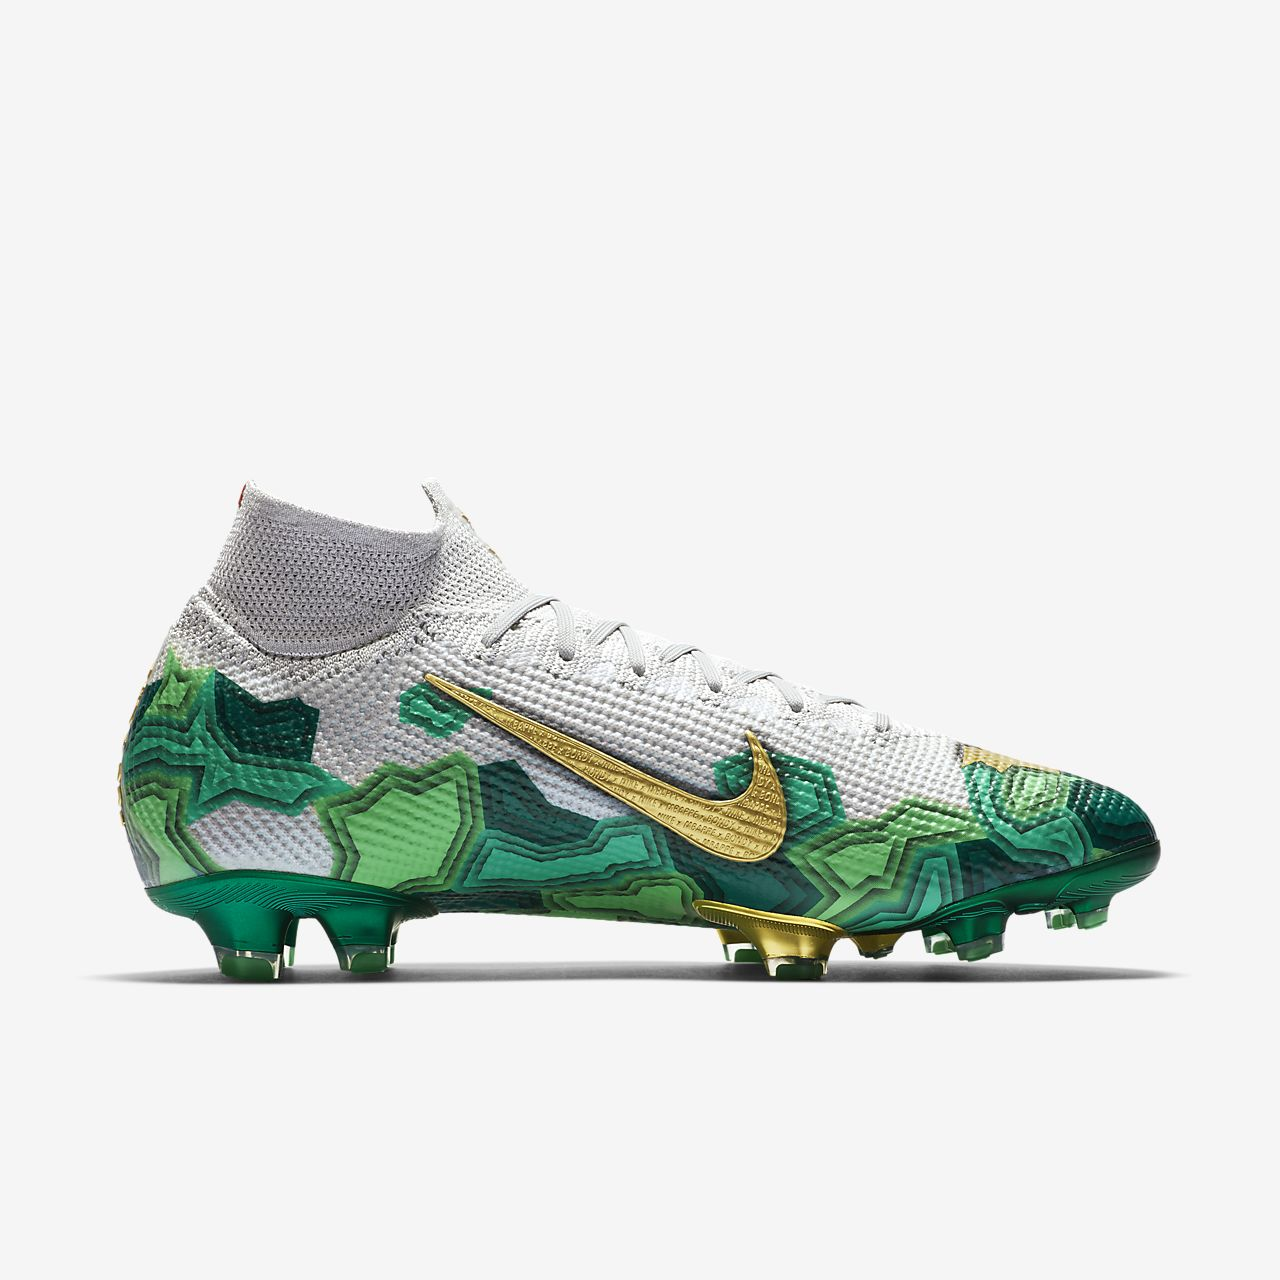 Cheap Nike Superfly 7, Fake Nike Mercurial Superfly 7 Elite Boots Sale